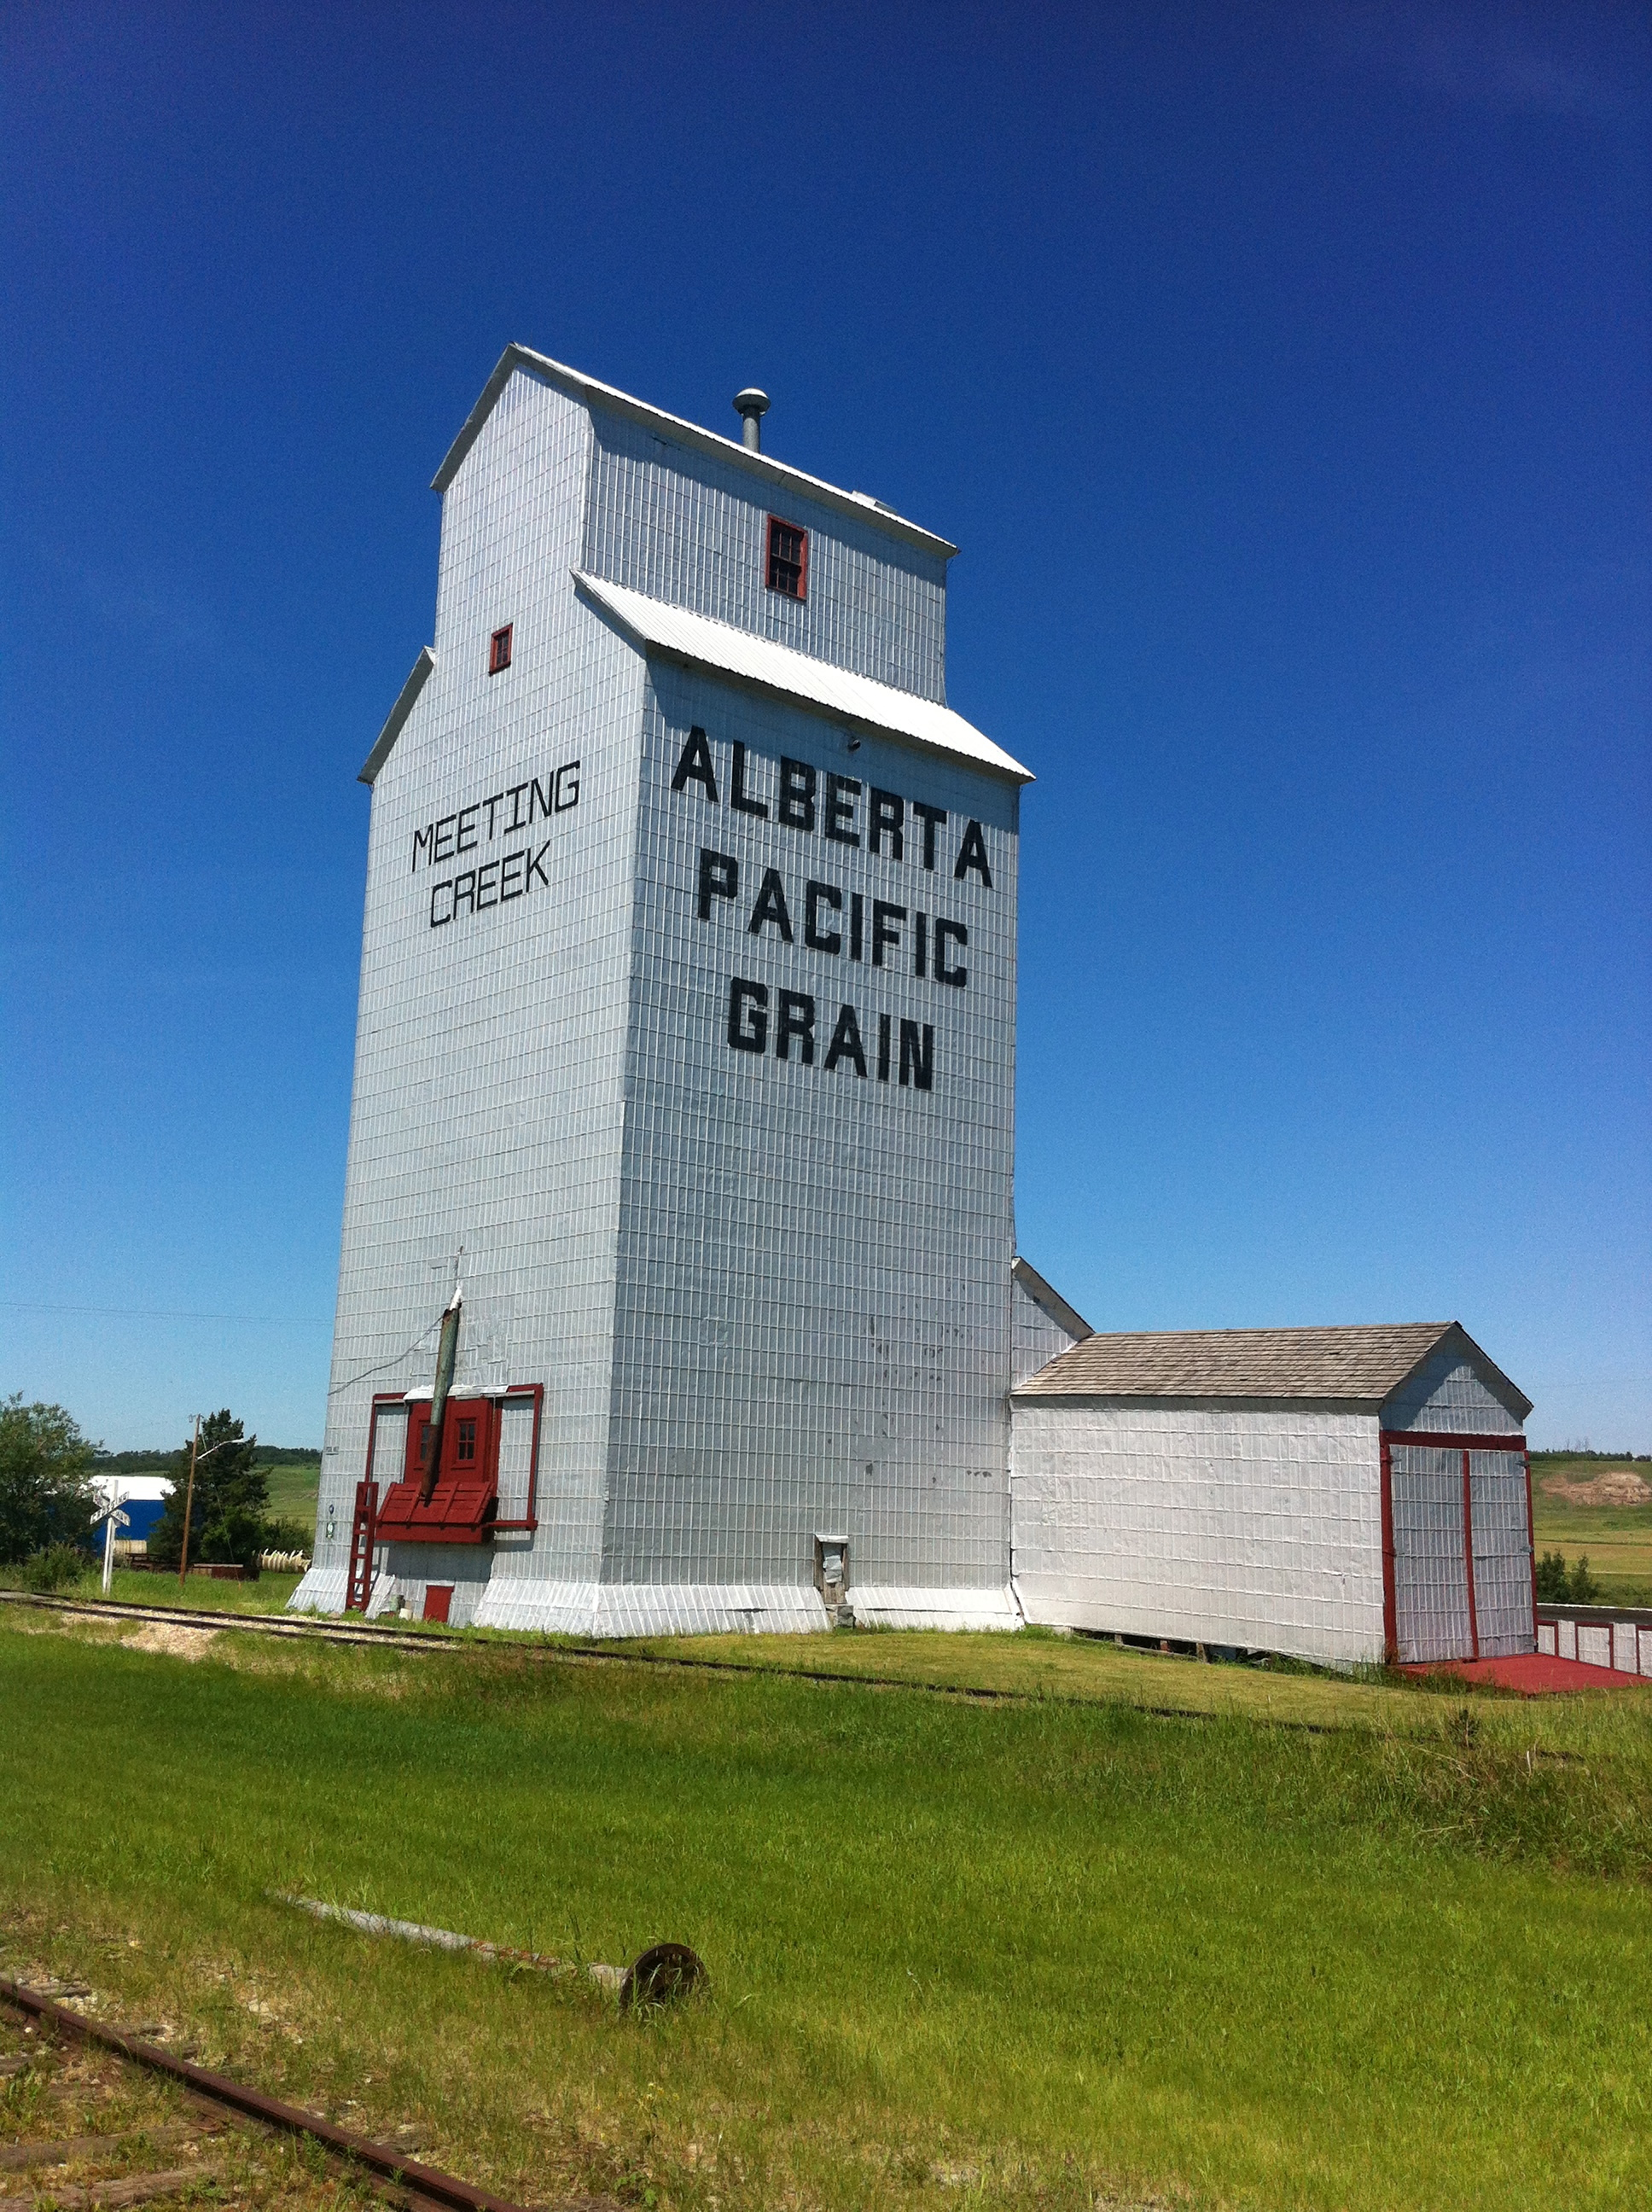 This 40,000 bushel elevator was constructed by the Alberta Pacific Grain Company in 1917 or 1918 depending on what didactic panel you believe. It was subsequently acquired by the Alberta Wheat Pool and operated until 1984.  In 1989, it when it was donated to the Canadian Northern Railway Society.  It has been refurbished and opened for public display.